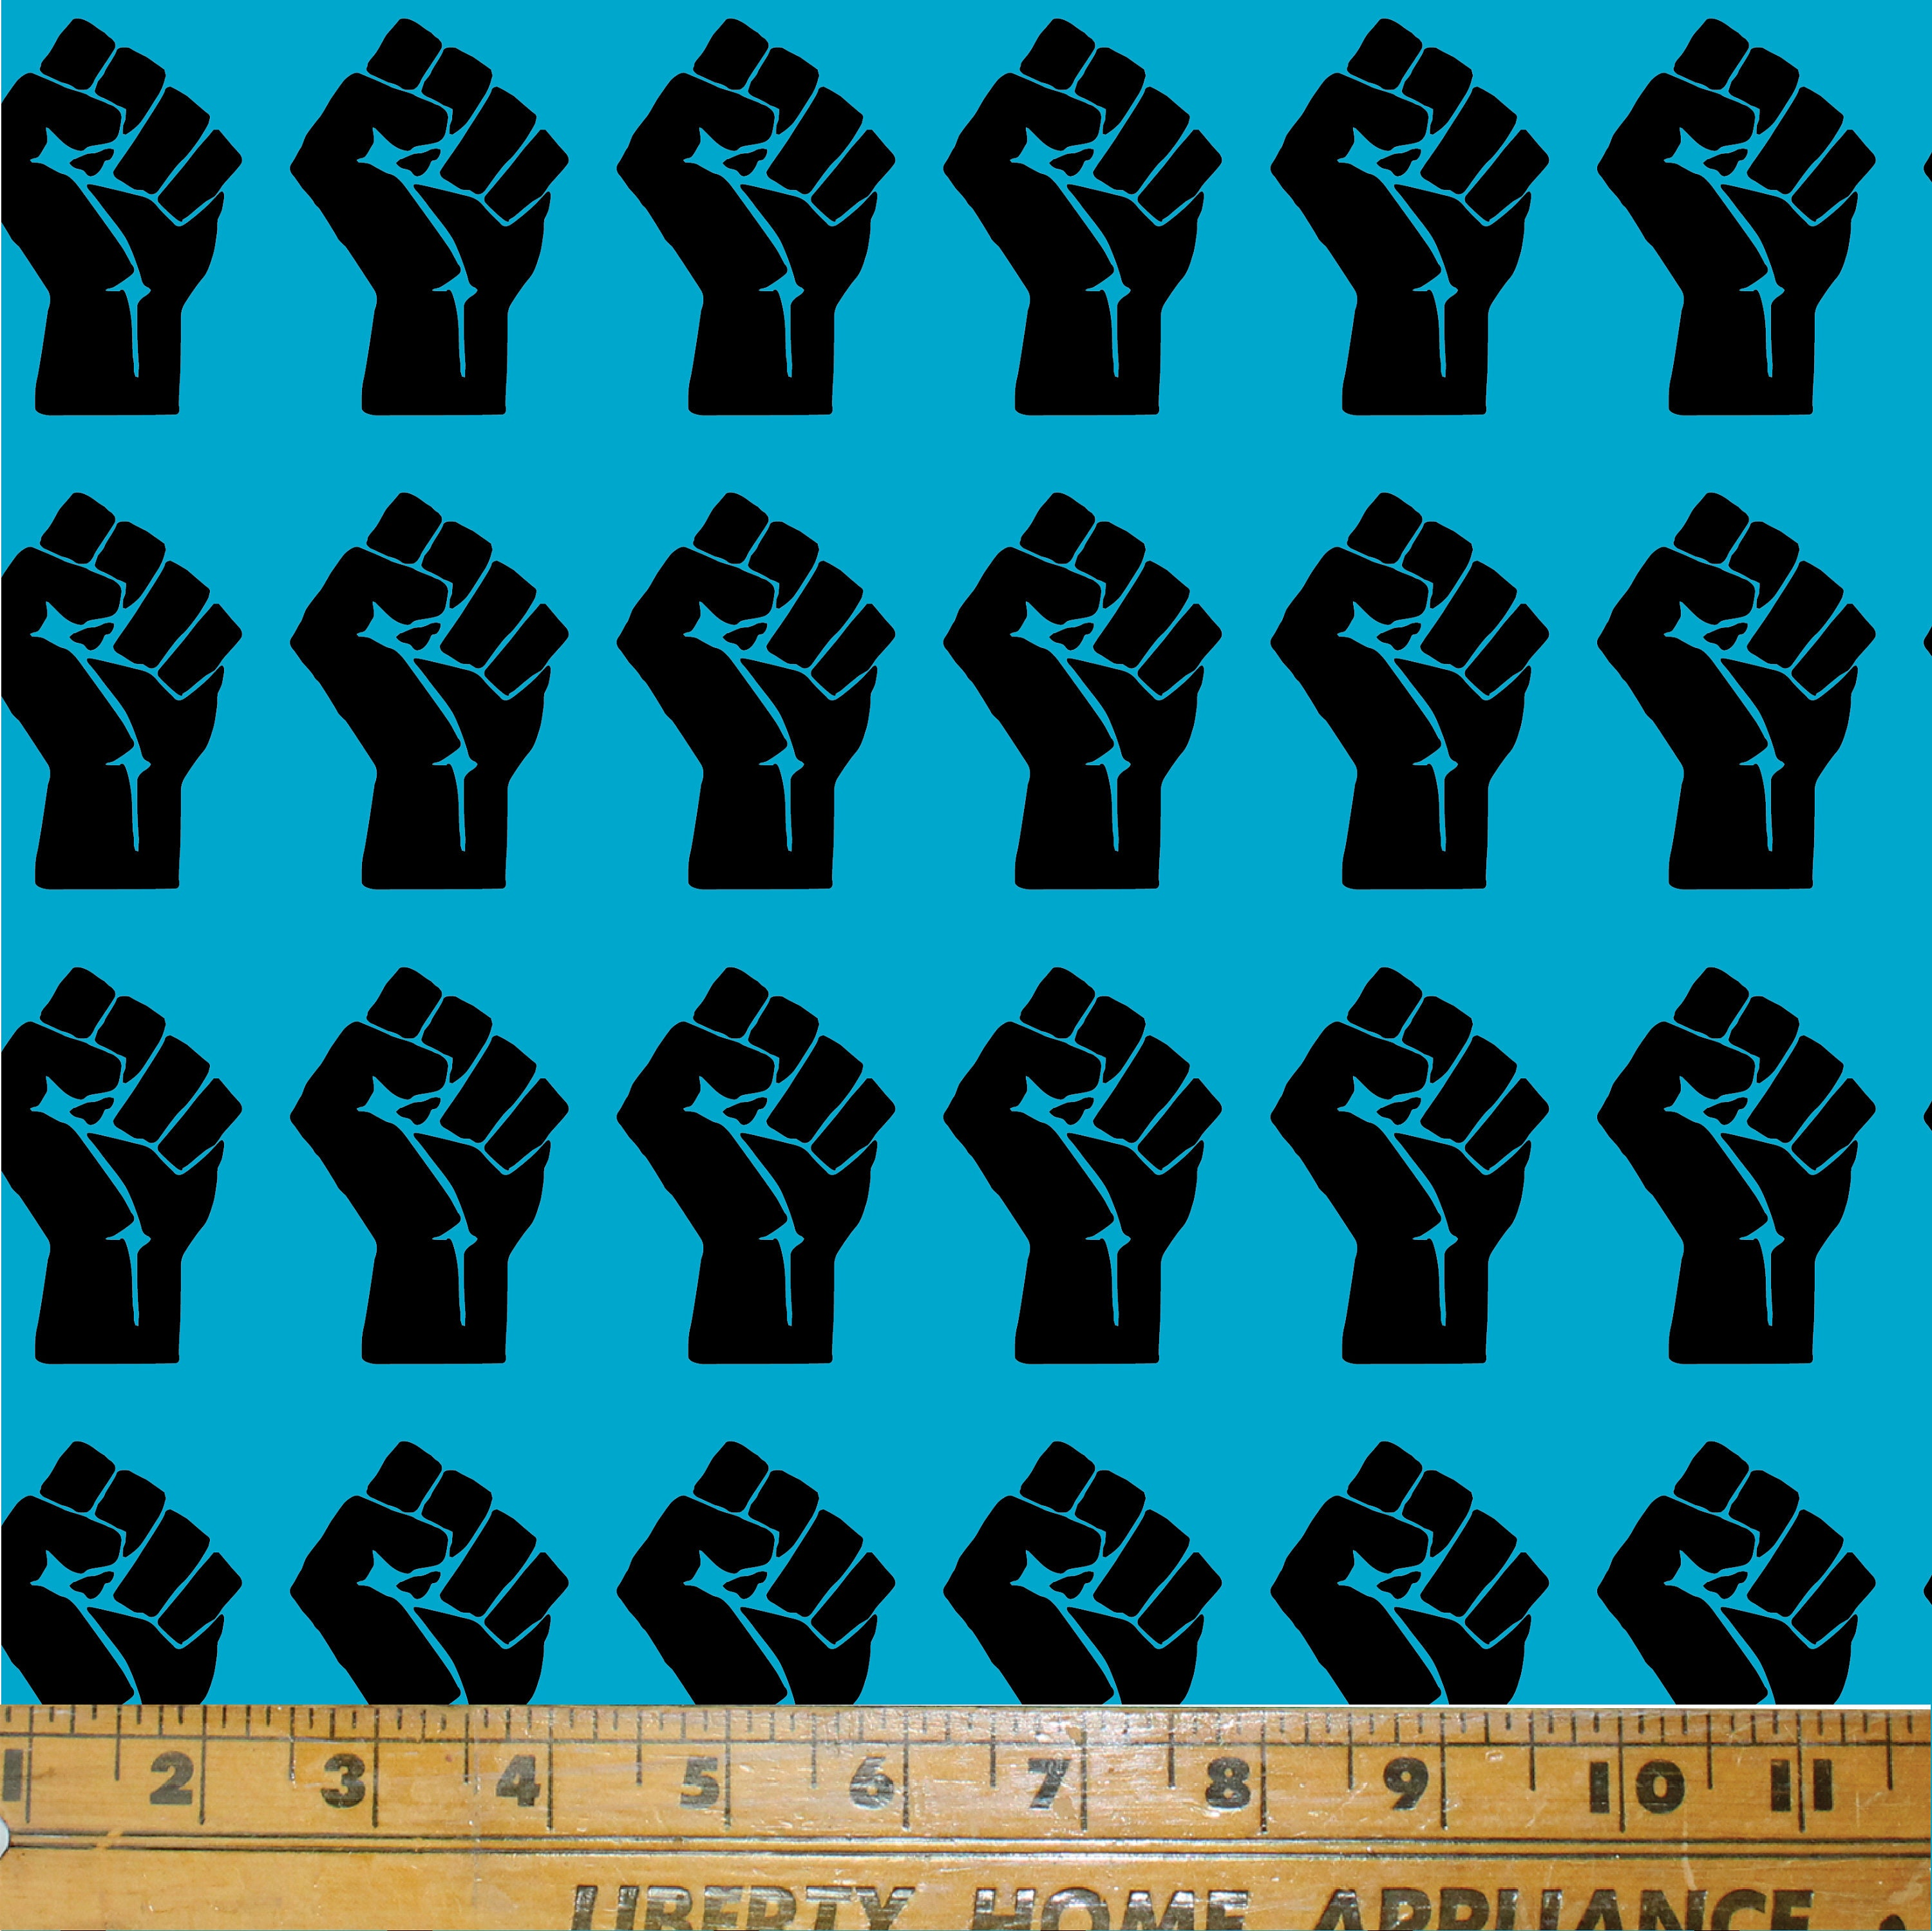 Printed in the USA by Think Turner *NEW!* Textile Print  Cotton Fabric  Rebel  Black Lives Matter BLM Fist Fabric Print in White